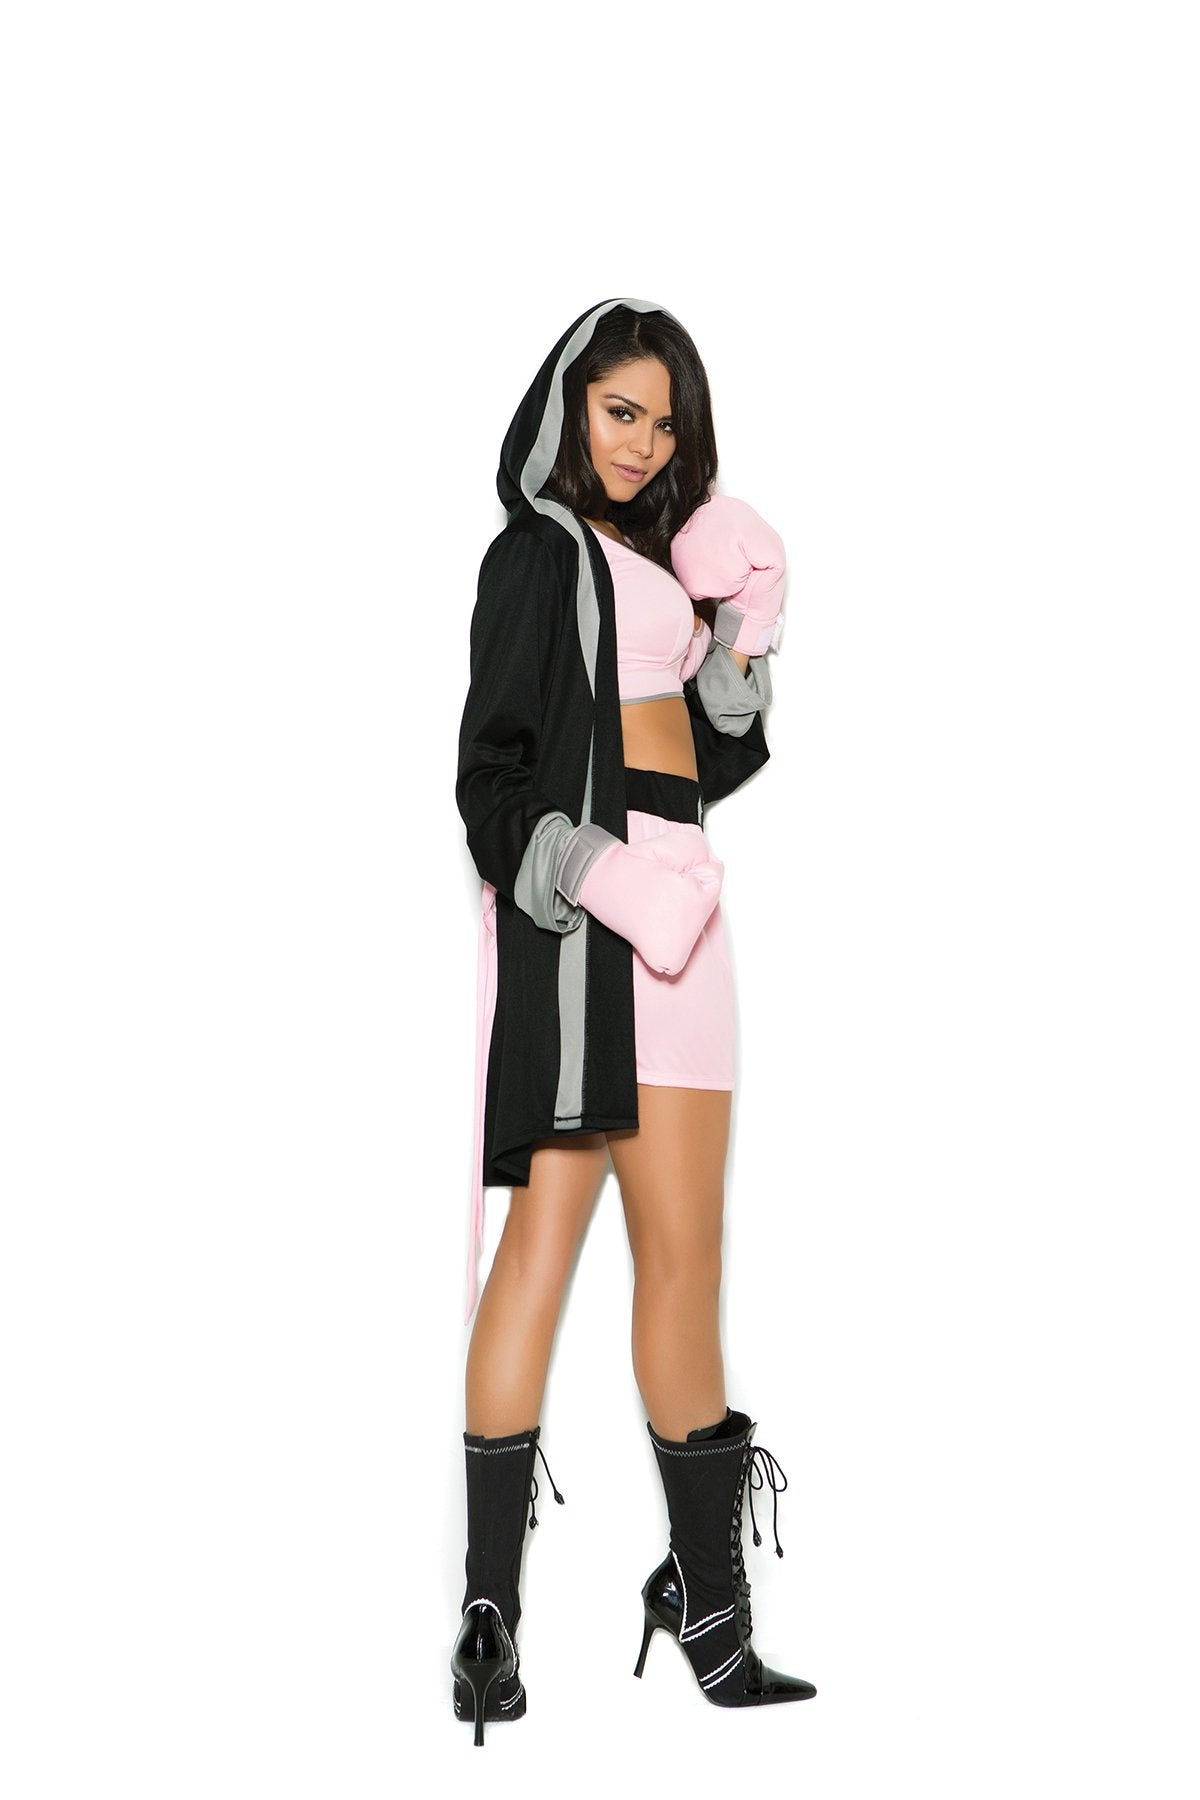 Prize Fighter Boxer Costume costumes size smallcolor pinkNakees